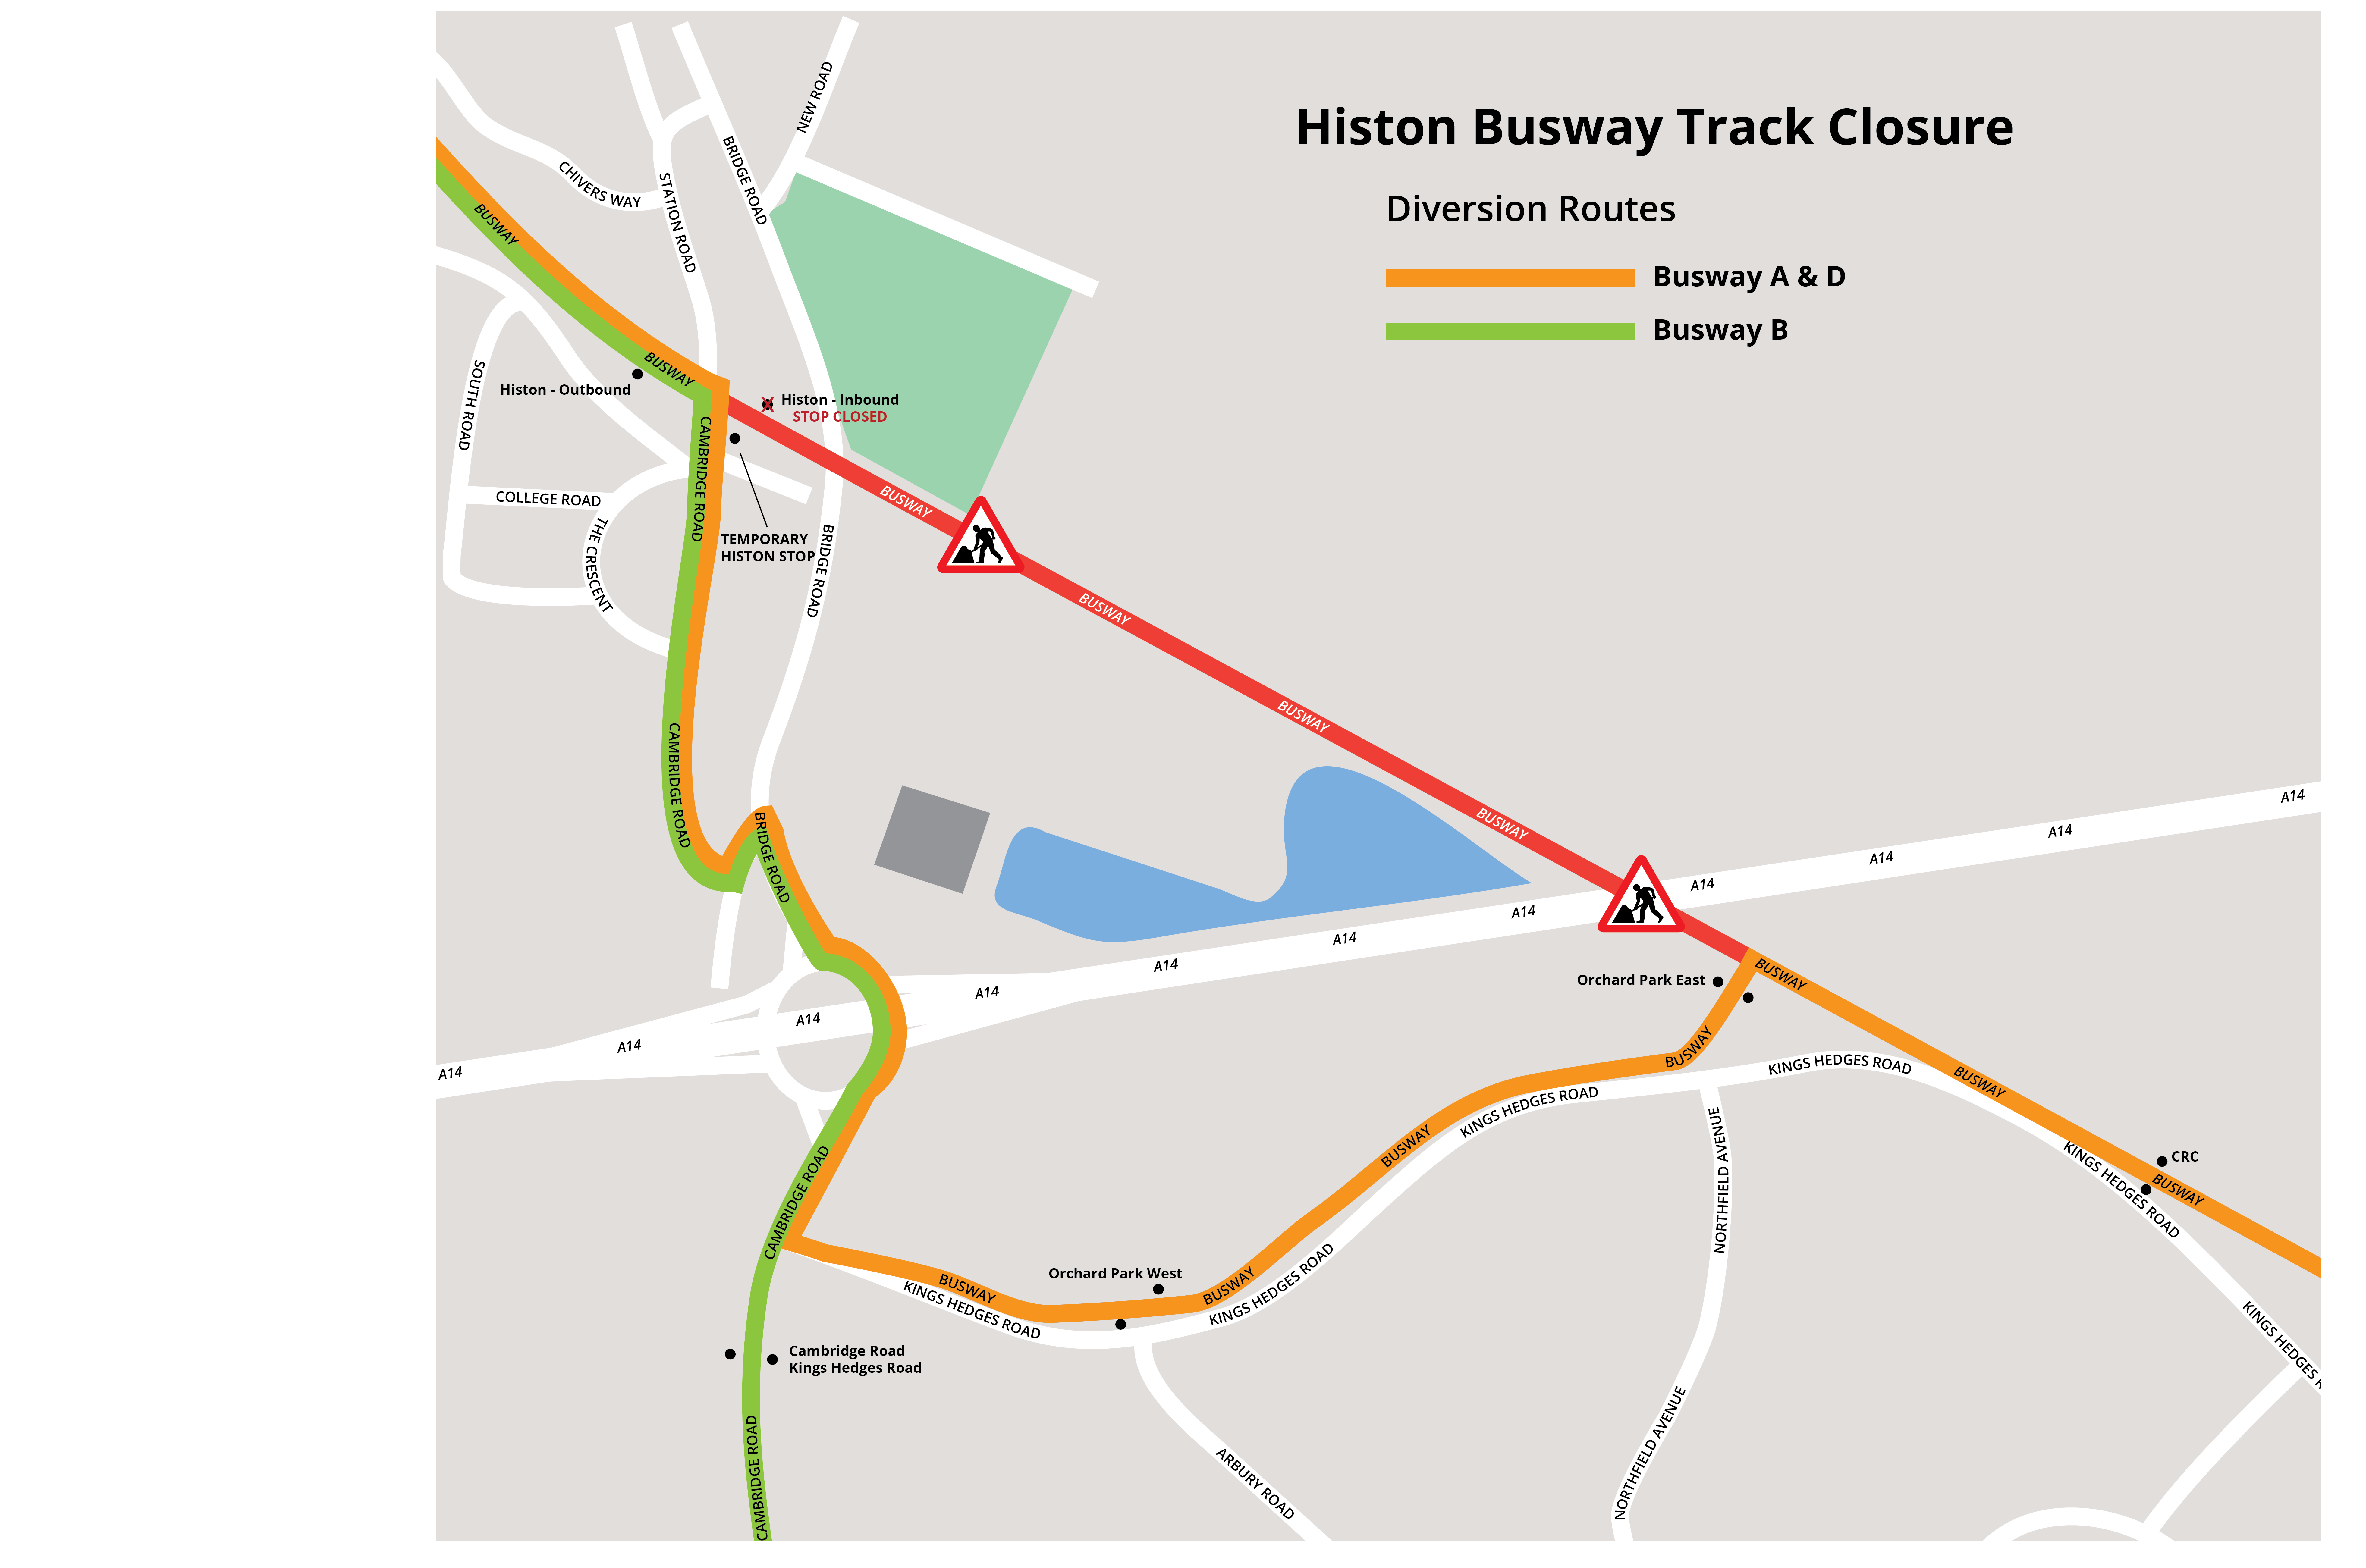 EAST-MAP-HISTONCLOSURE-JUN19